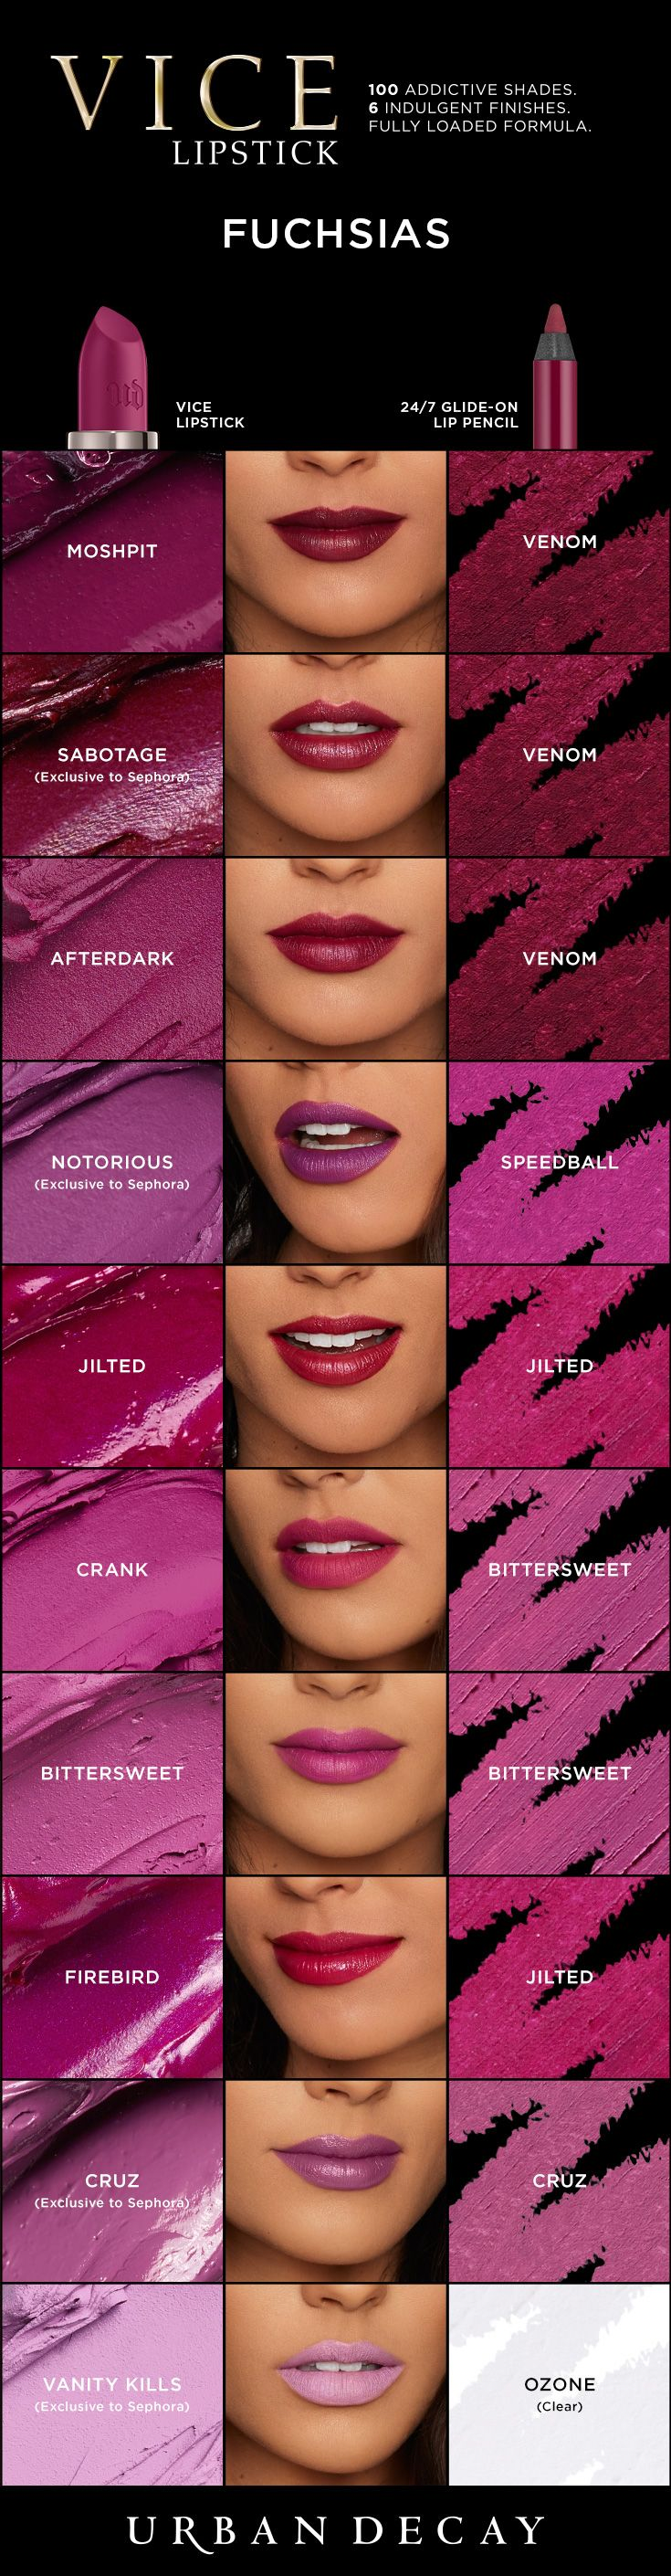 You can never go wrong with a few Fuchsias! From Moshpit to Vanity Kills, get these killer shades of Vice Lipstick and more now at Urban Decay.